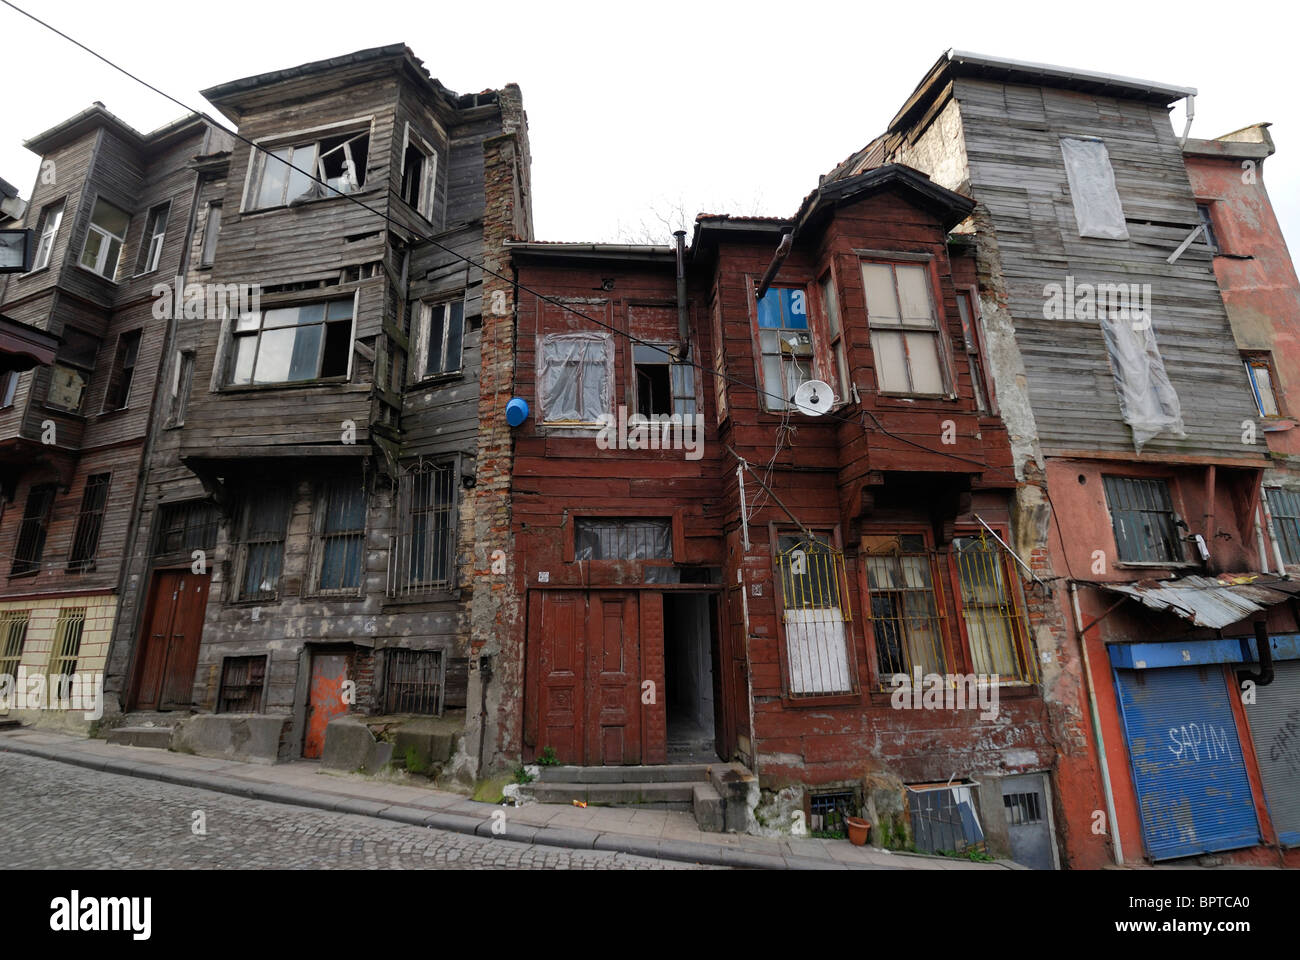 Istanbul. Turkey. Dilapidated Ottoman era wooden buildings ...